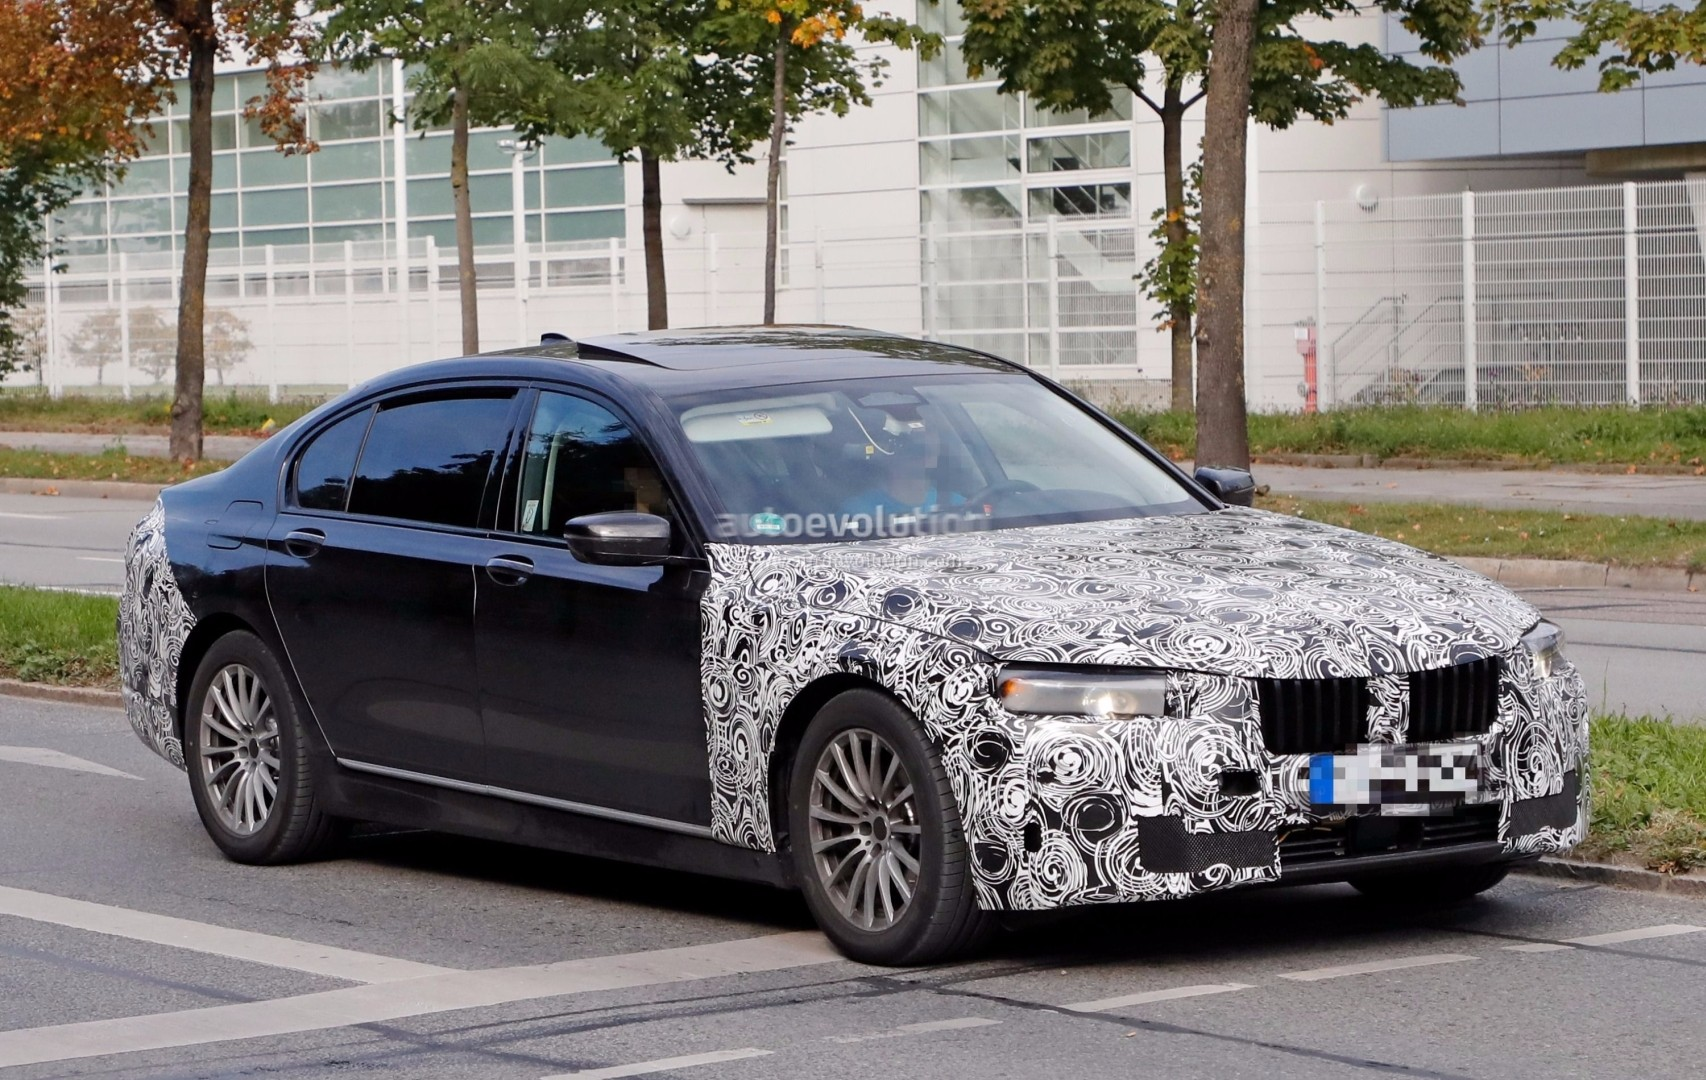 spyshots facelifted bmw 7 series already shows up in german traffic autoevolution. Black Bedroom Furniture Sets. Home Design Ideas